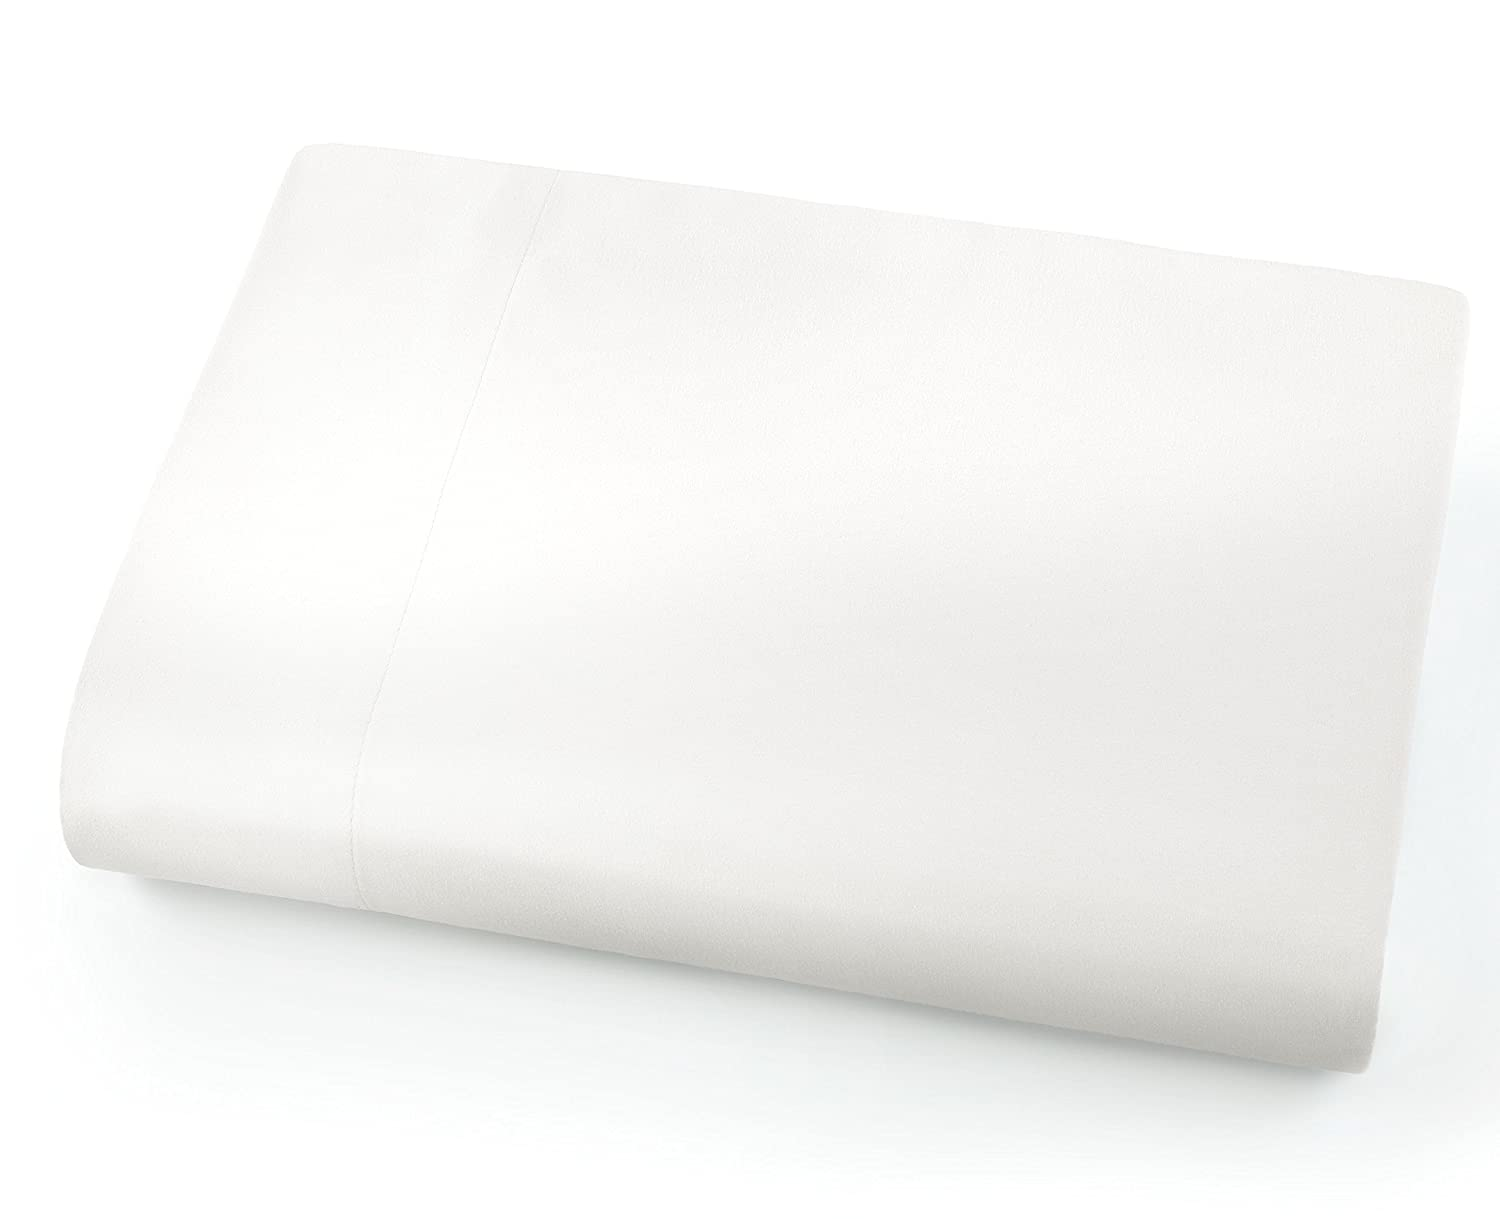 Southshore Fine Linens - Oversized Flat Sheets Extra Large - 132 Inches x 110 Inches (Bright White)